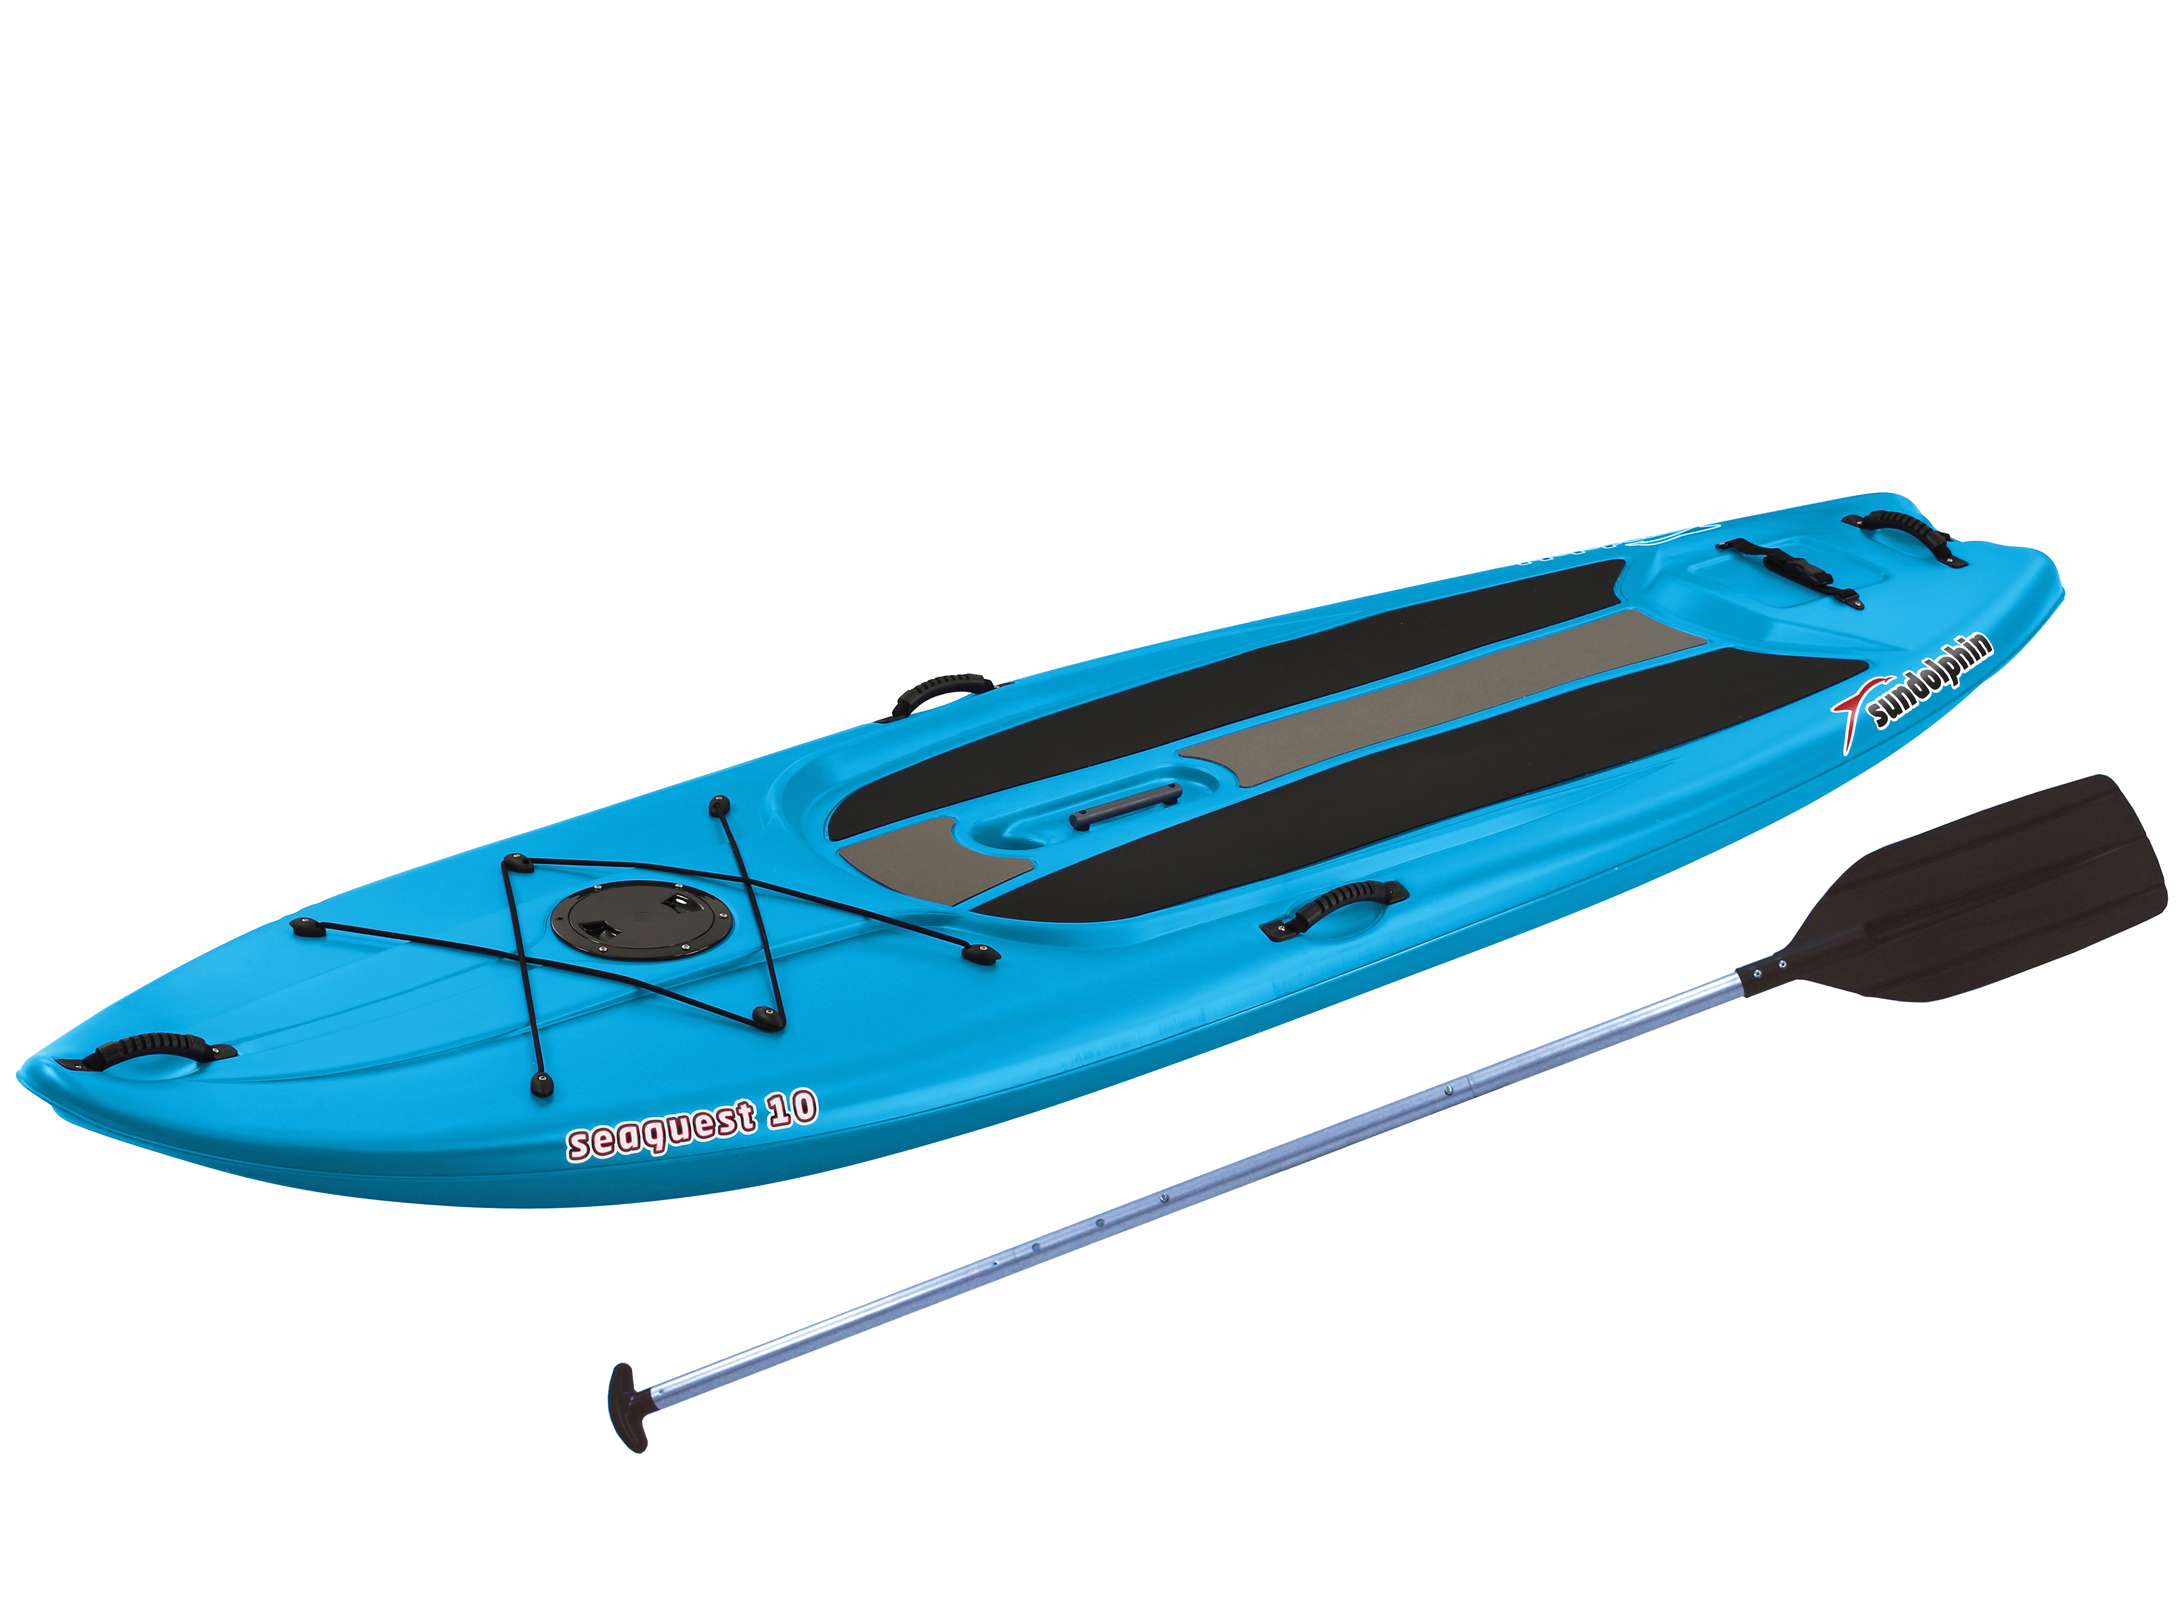 Sun Dolphin Seaquest 10' SUP, Includes Paddle by KL Outdoor